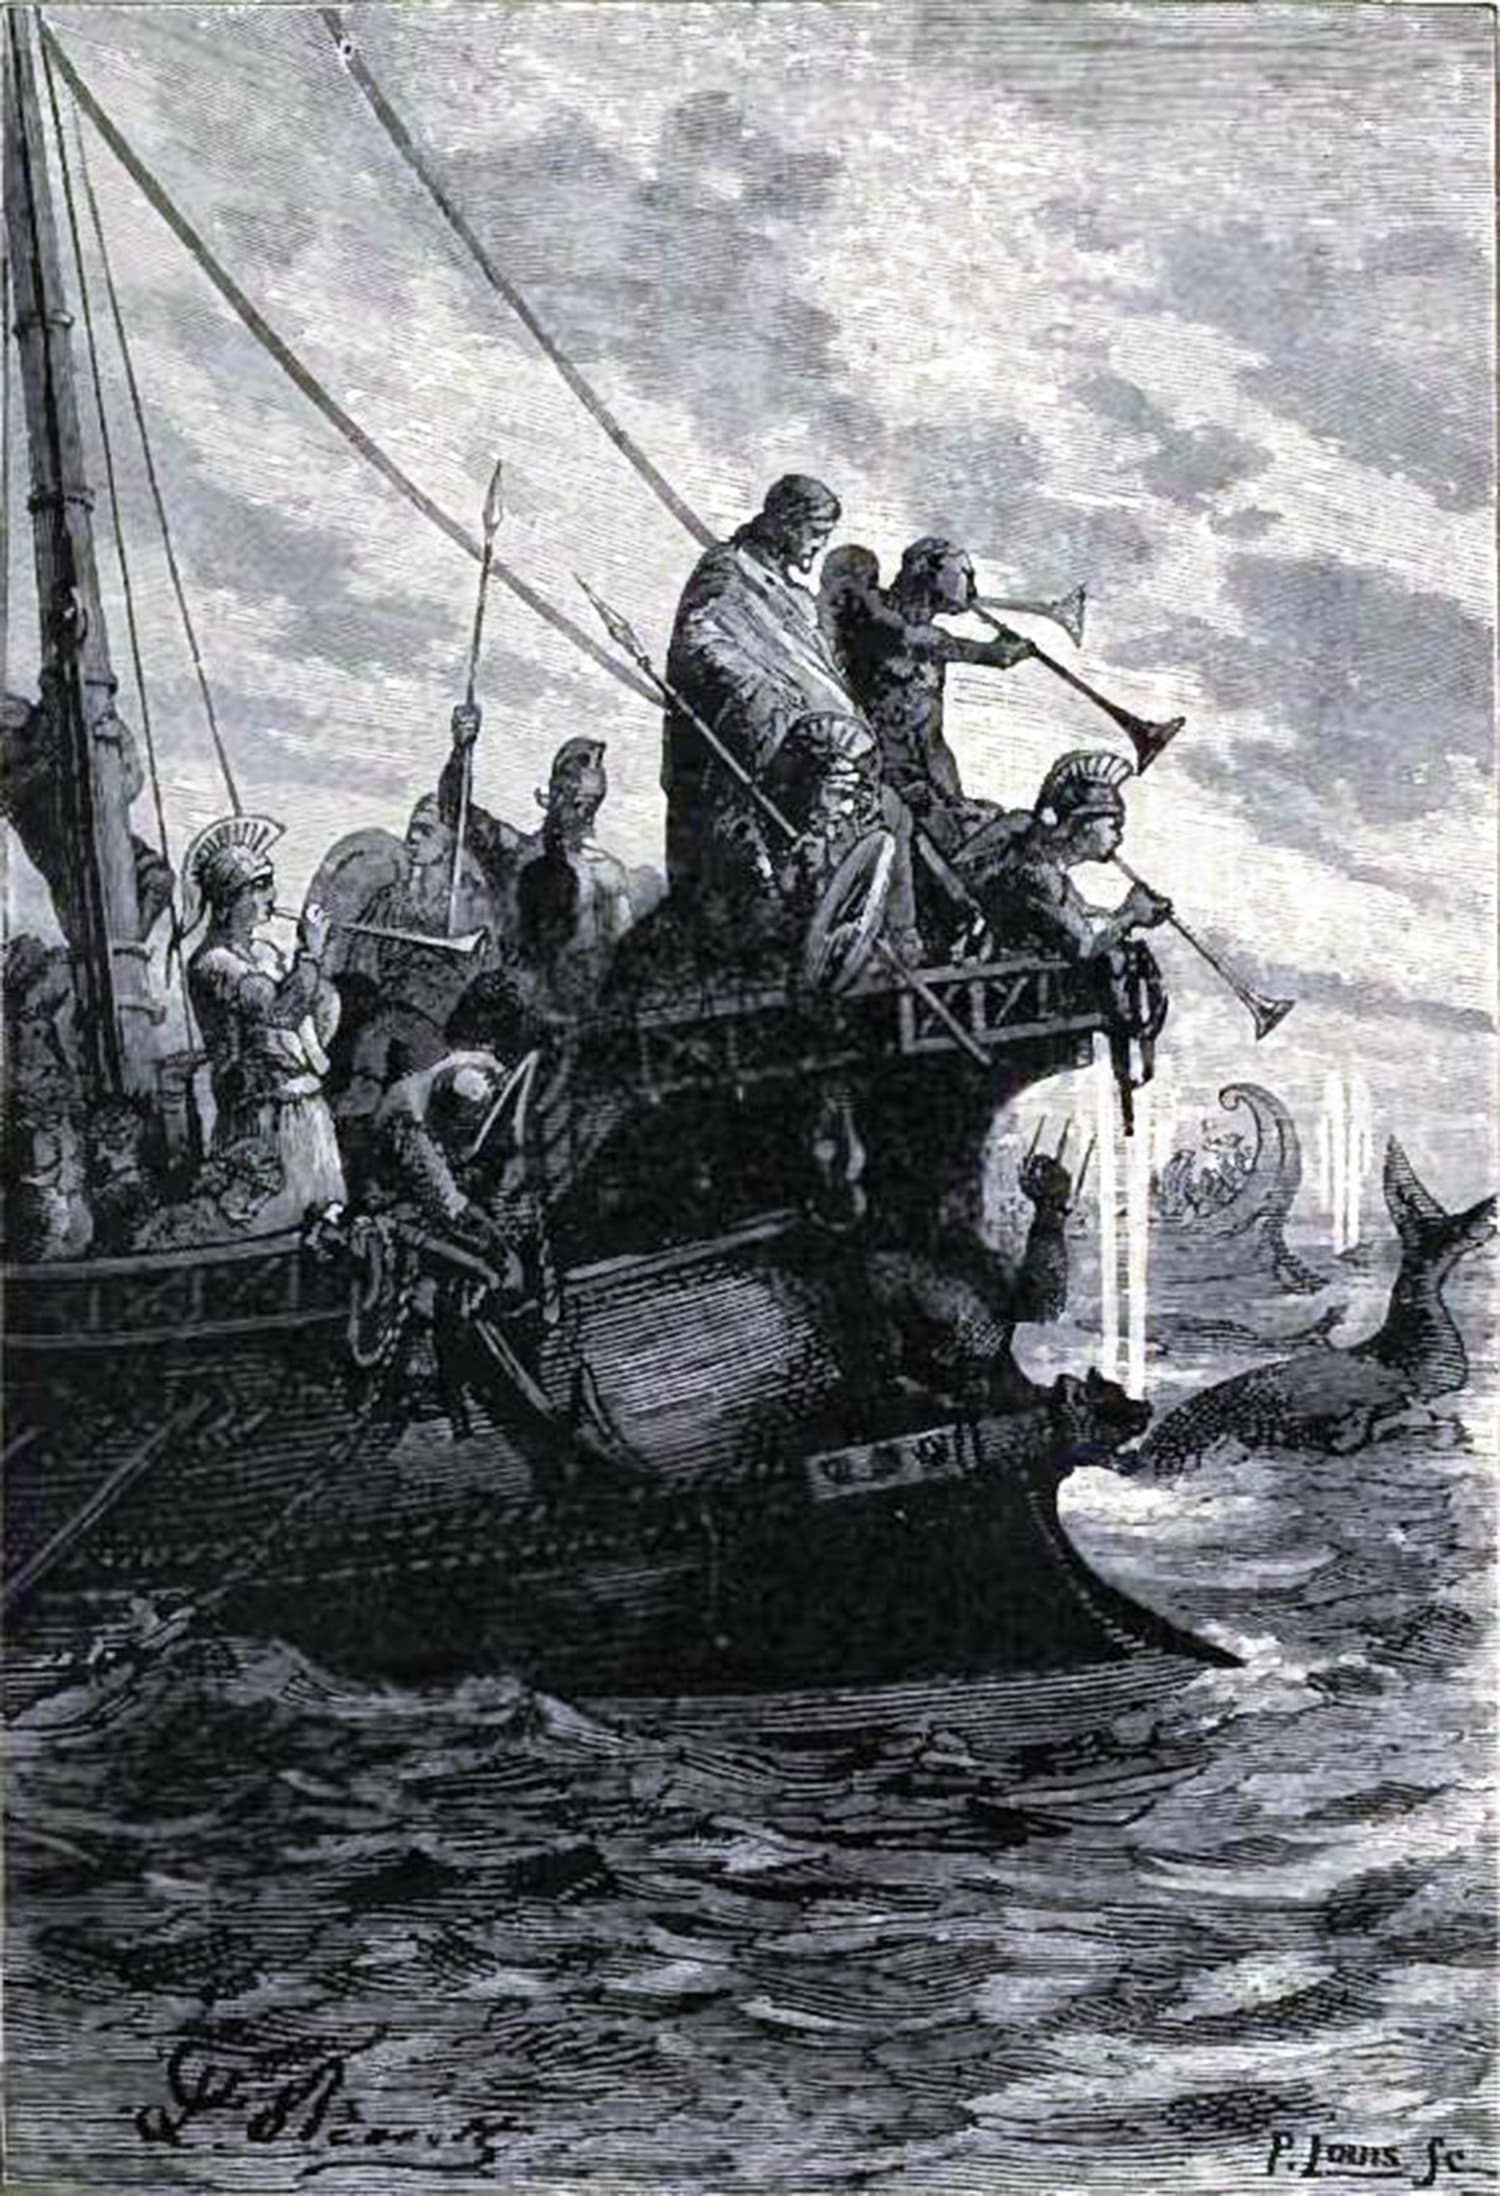 A 19th-century sketch of Greek commander, Nearchus, leading his fleet across River Indus in the present-day Sindh province of Pakistan. Source:The Voyage of Nearchus from the Indus to the Euphrates: William Vincent (Nabu Press, 2011).  Karachi in the Mirror of History: M Usman Damohi (Al-Abbas Publications, 2011).